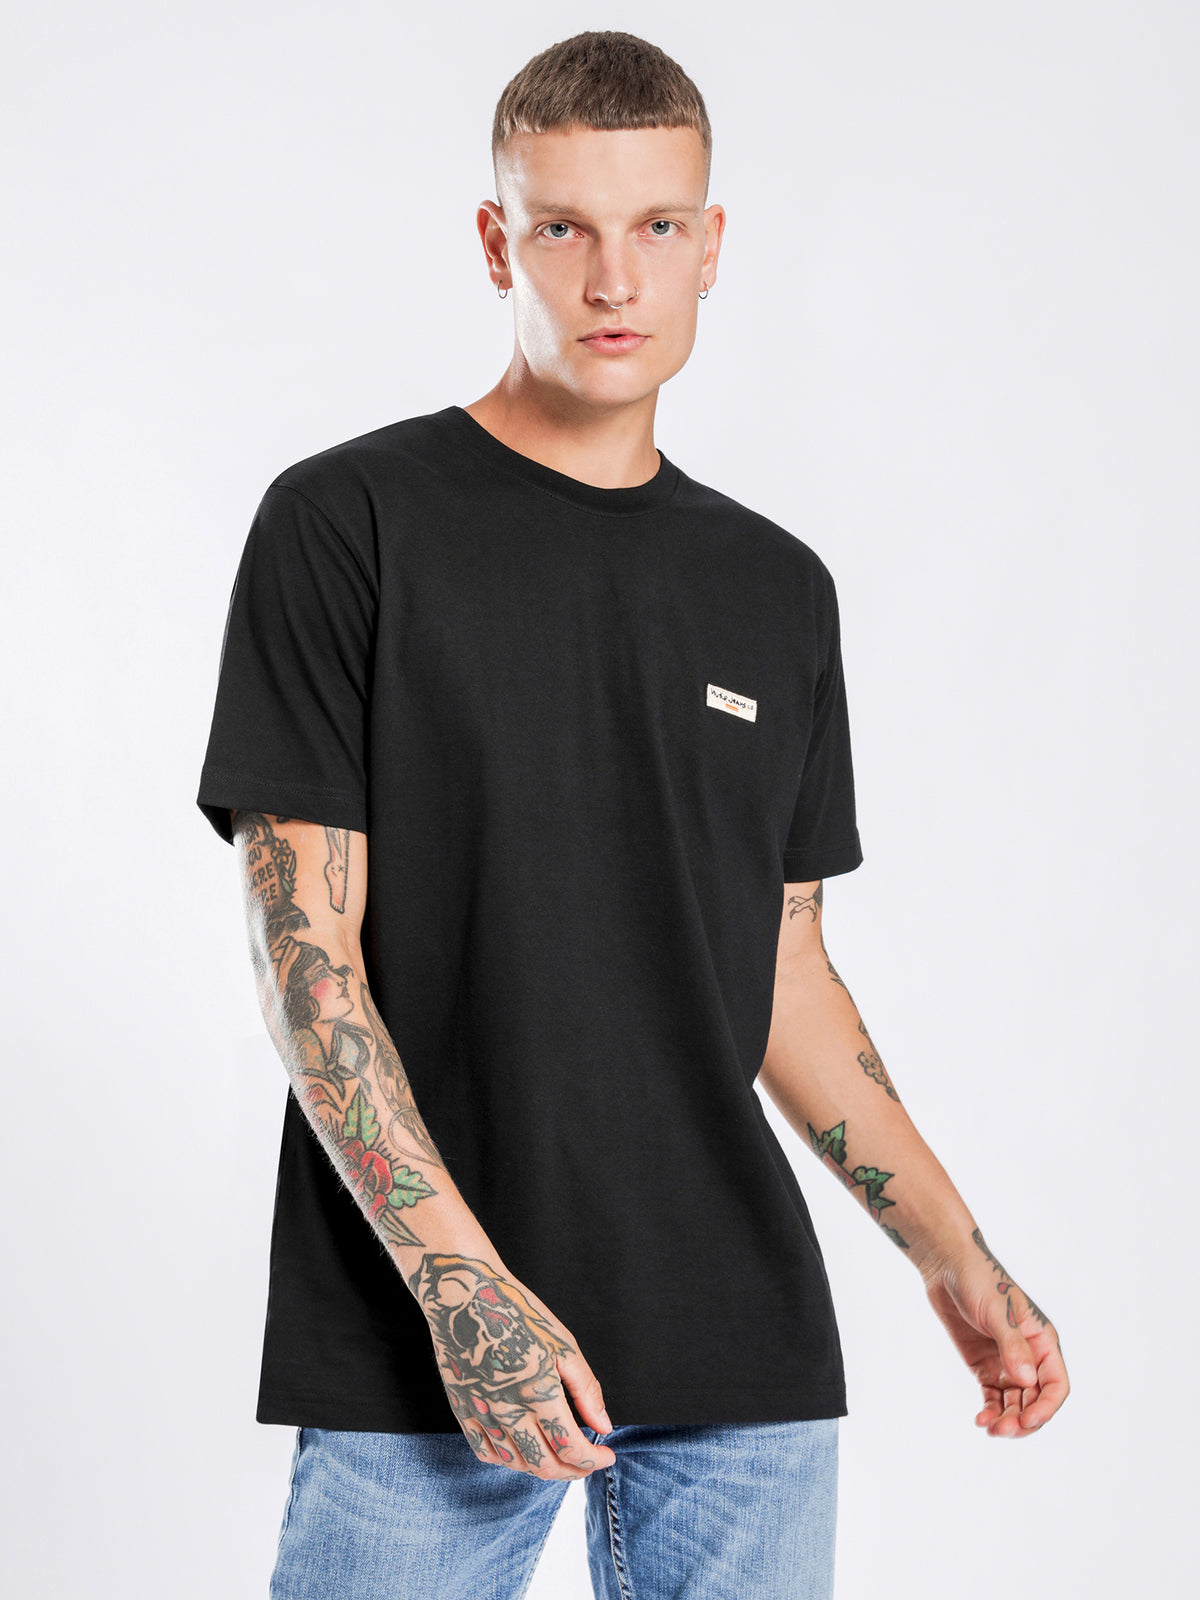 Daniel Logo T-Shirt in Black